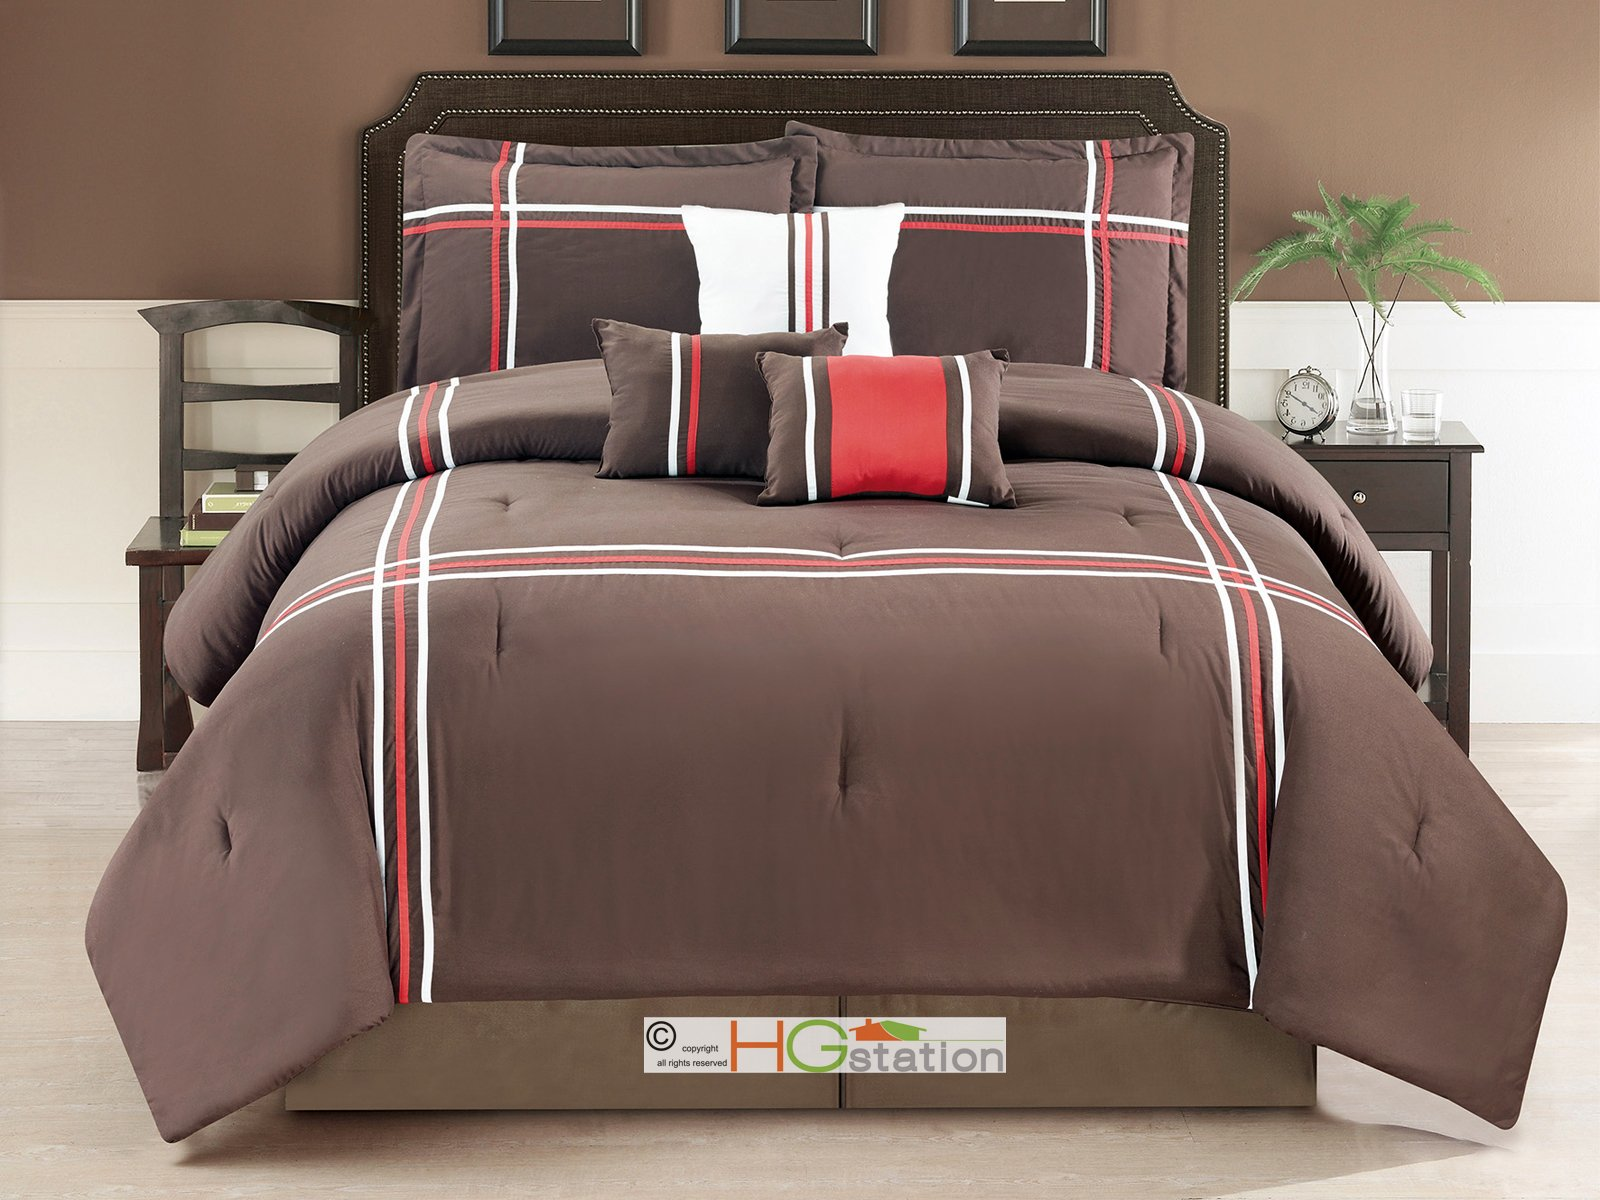 7-Pc Striped Bordered Patchwork Window Comforter Set Coffee Brown Red White Queen